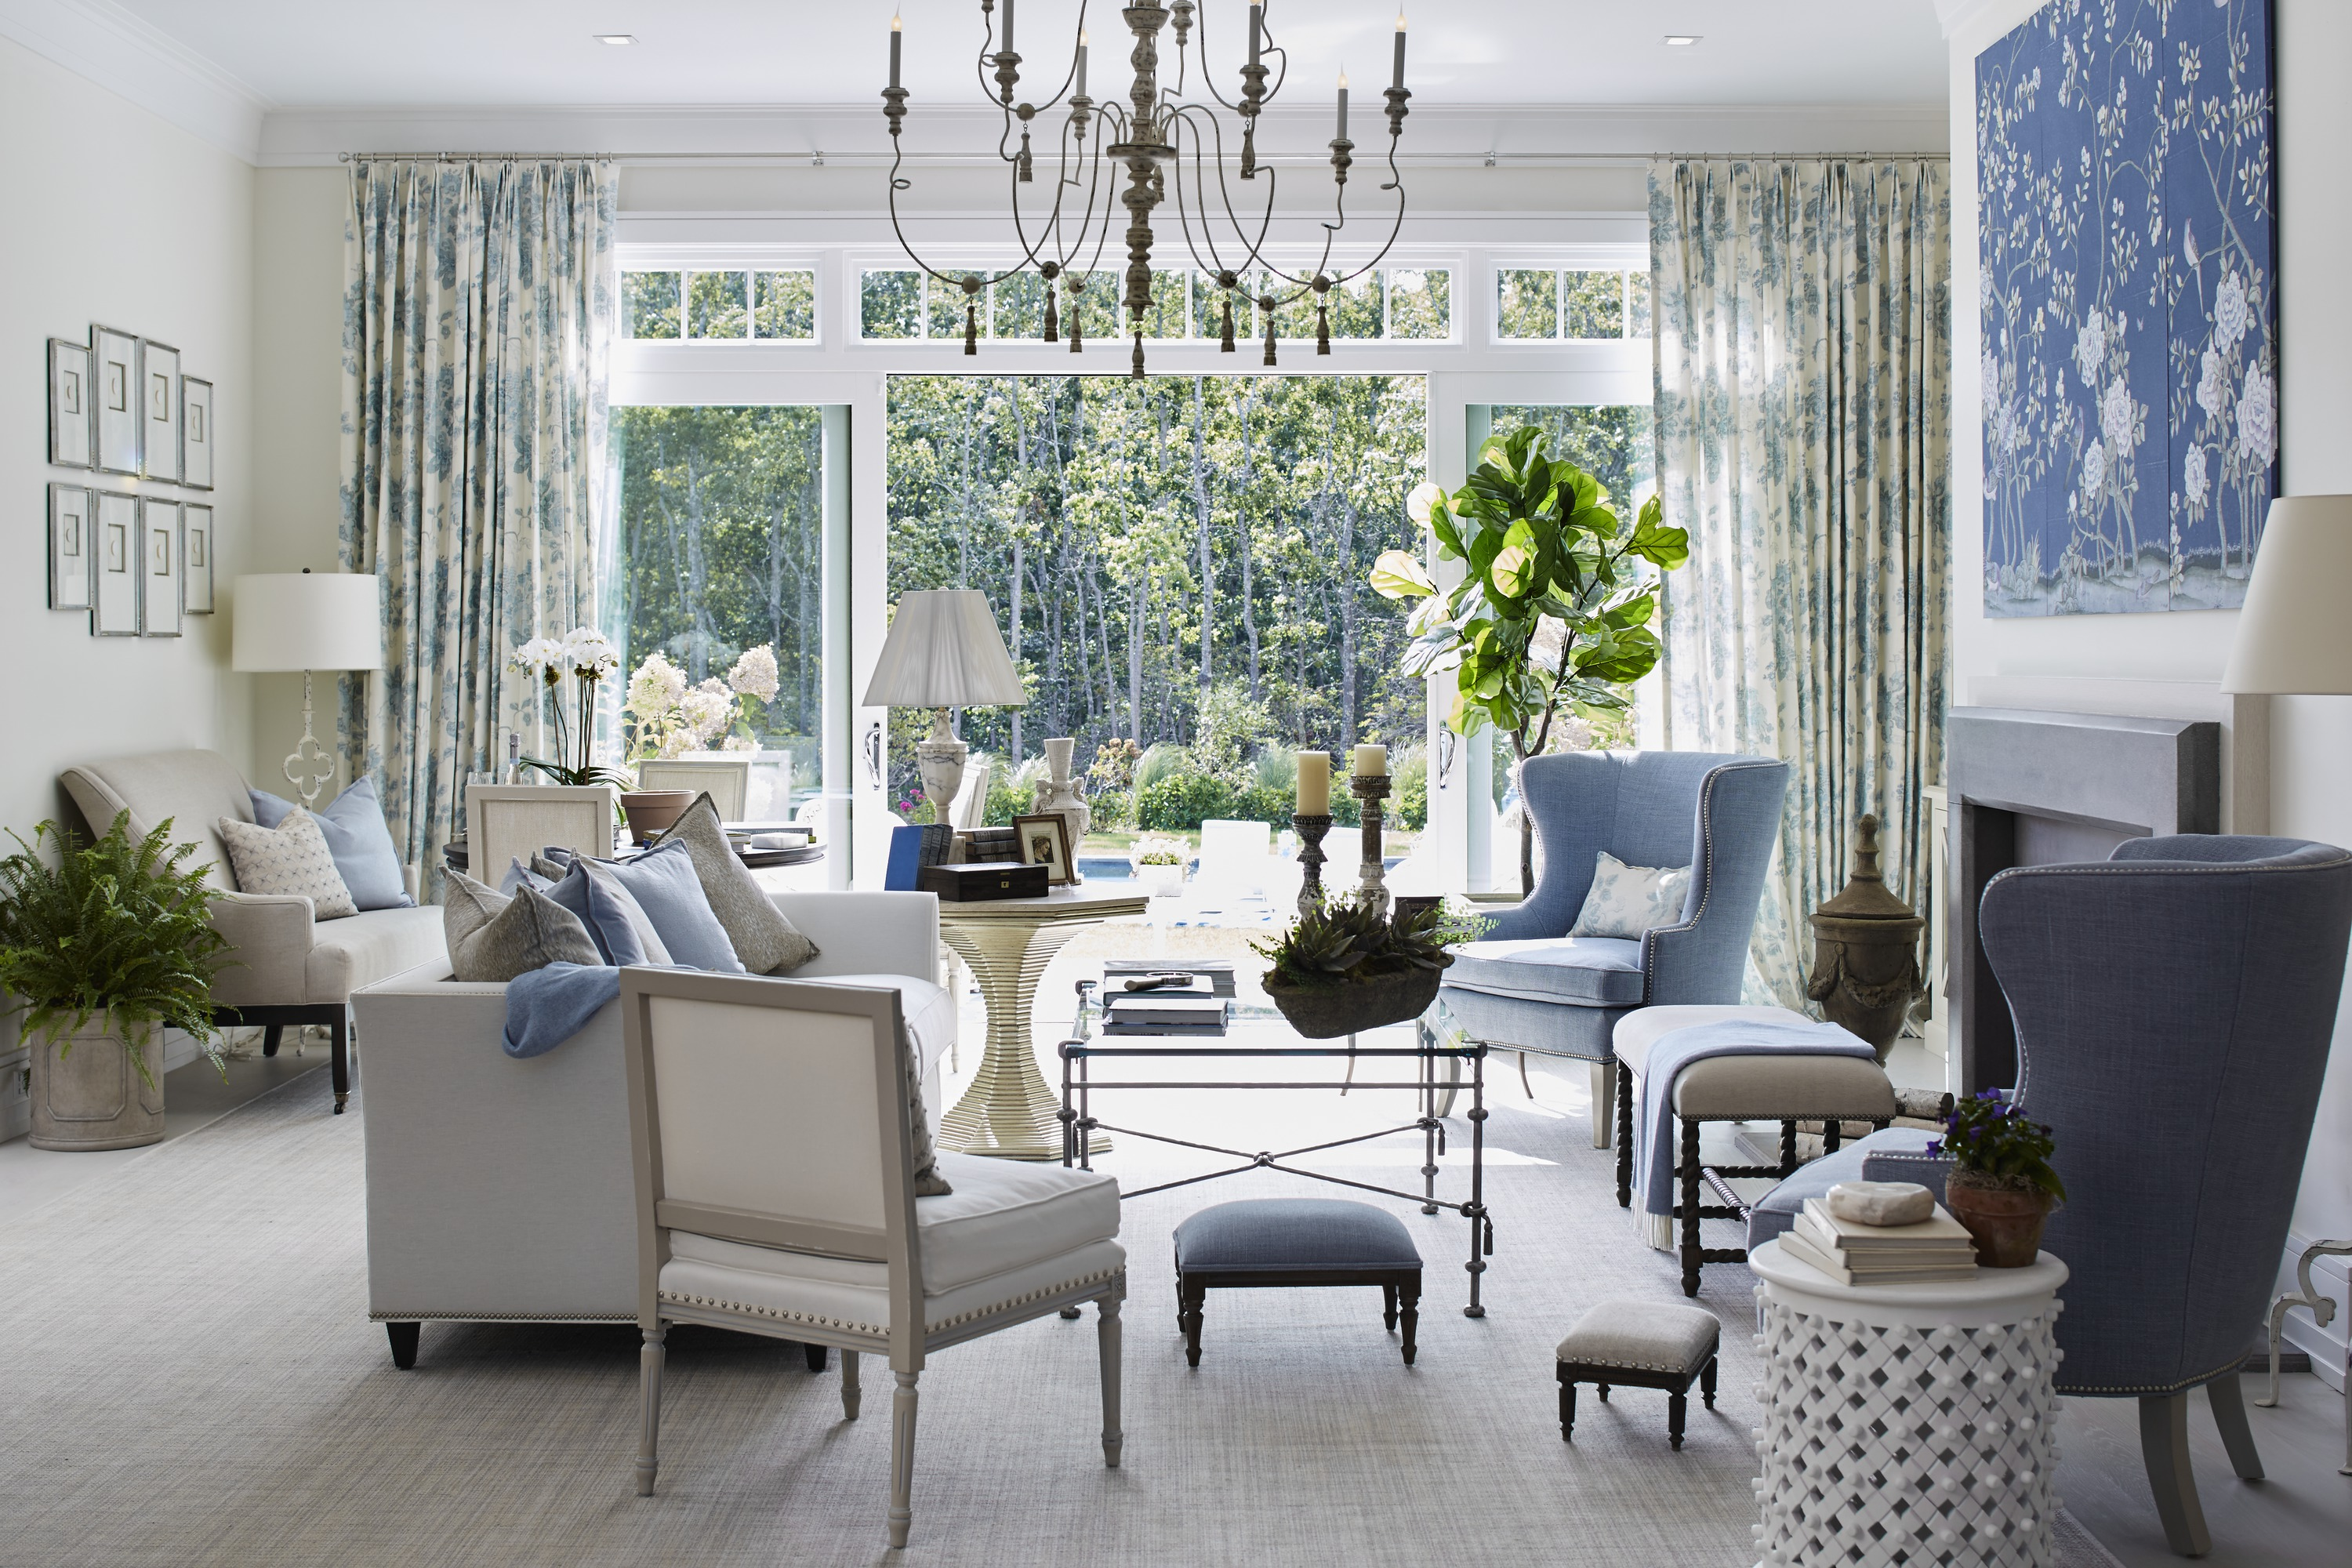 Designed by Kate Singer, this summer-hued great room draws its color palette and patterns from outdoors. Its essence is beautifully captured in the hand-painted de Gournay mural above the fireplace.